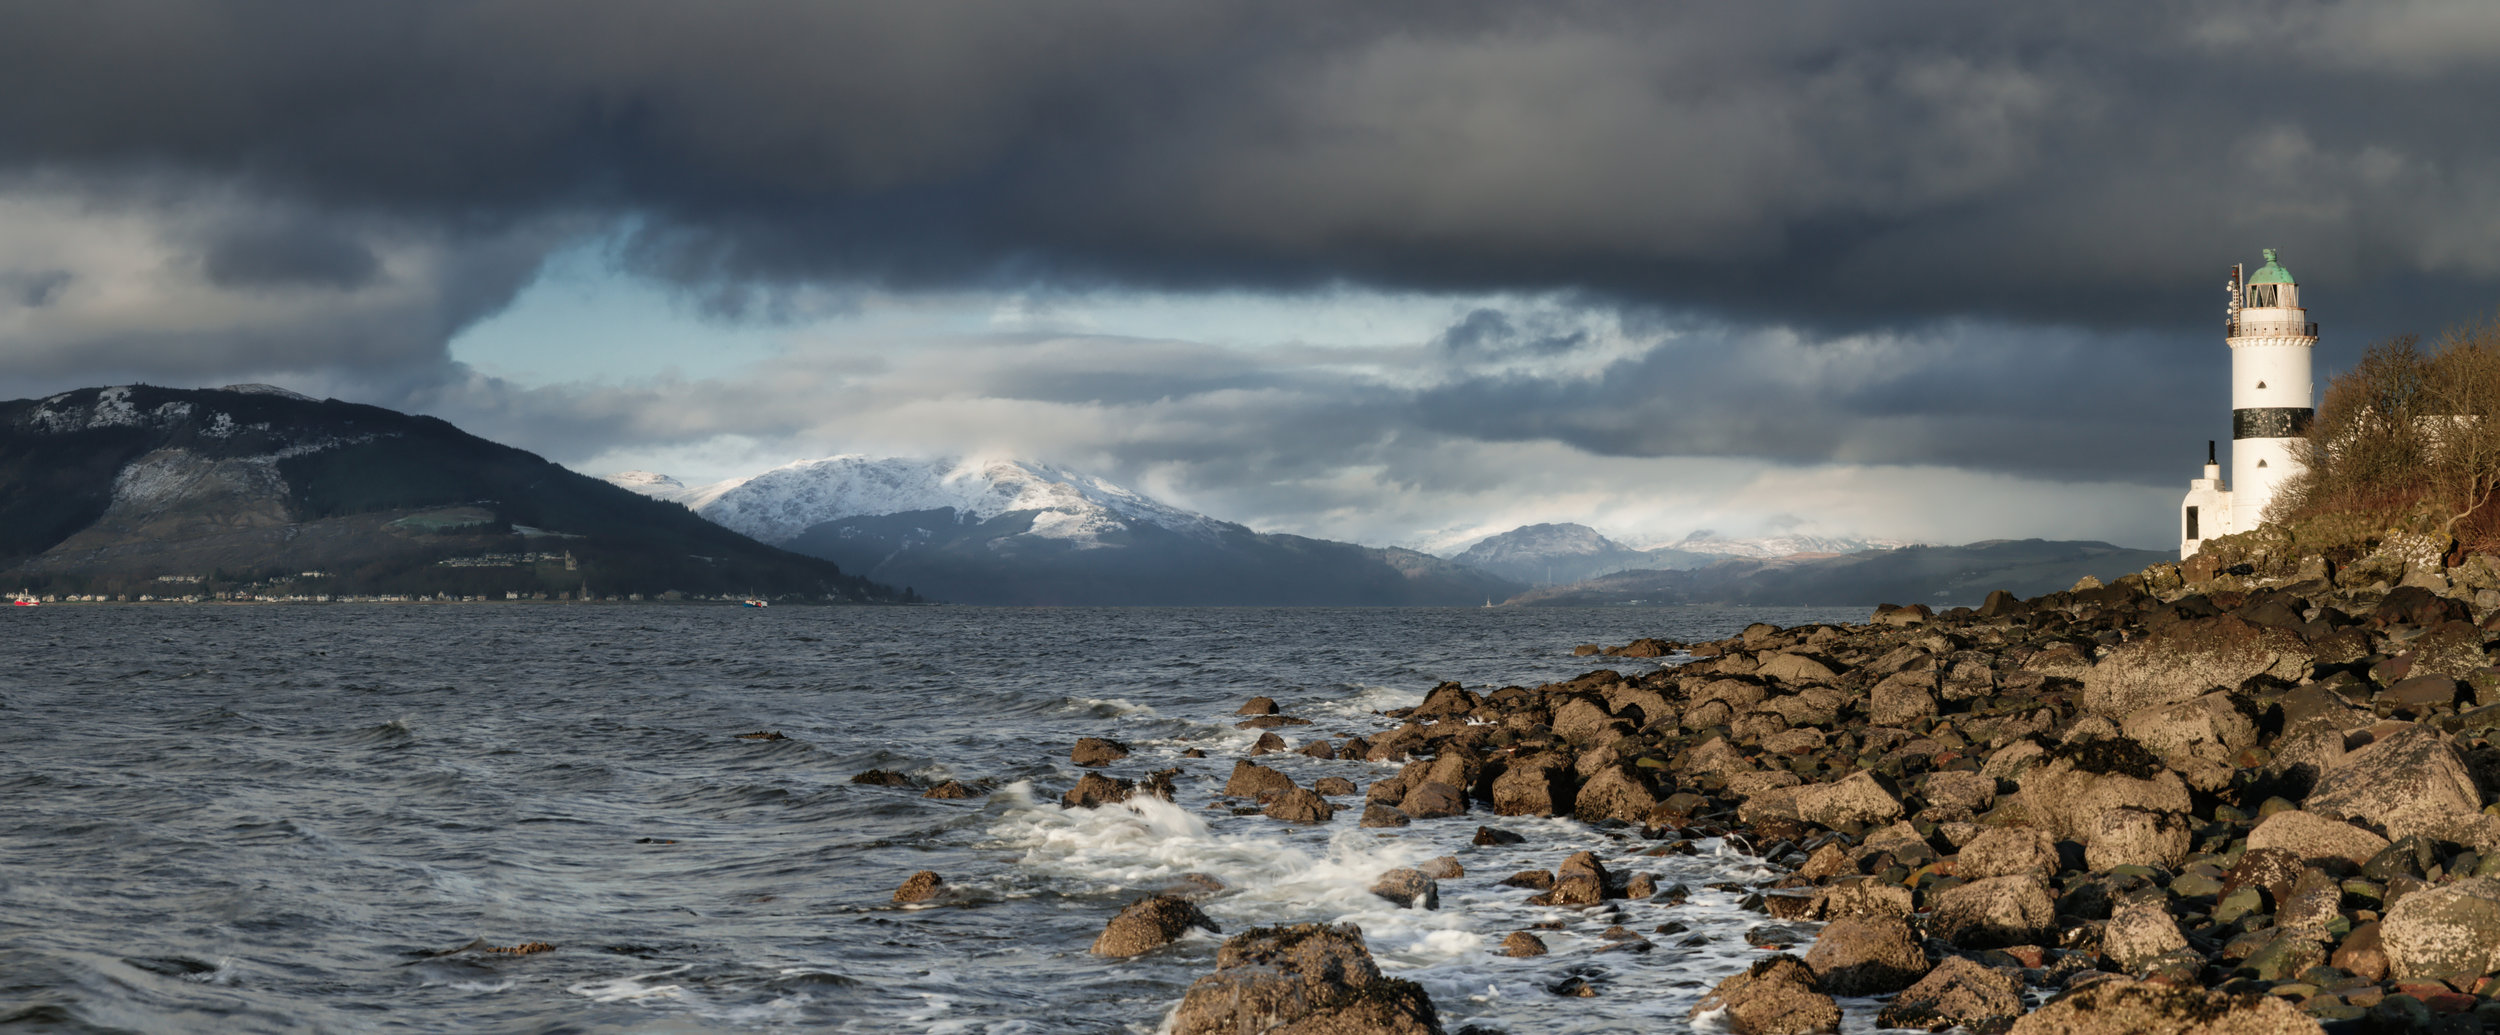 'Argyll from Cloch Point, Panoramic'